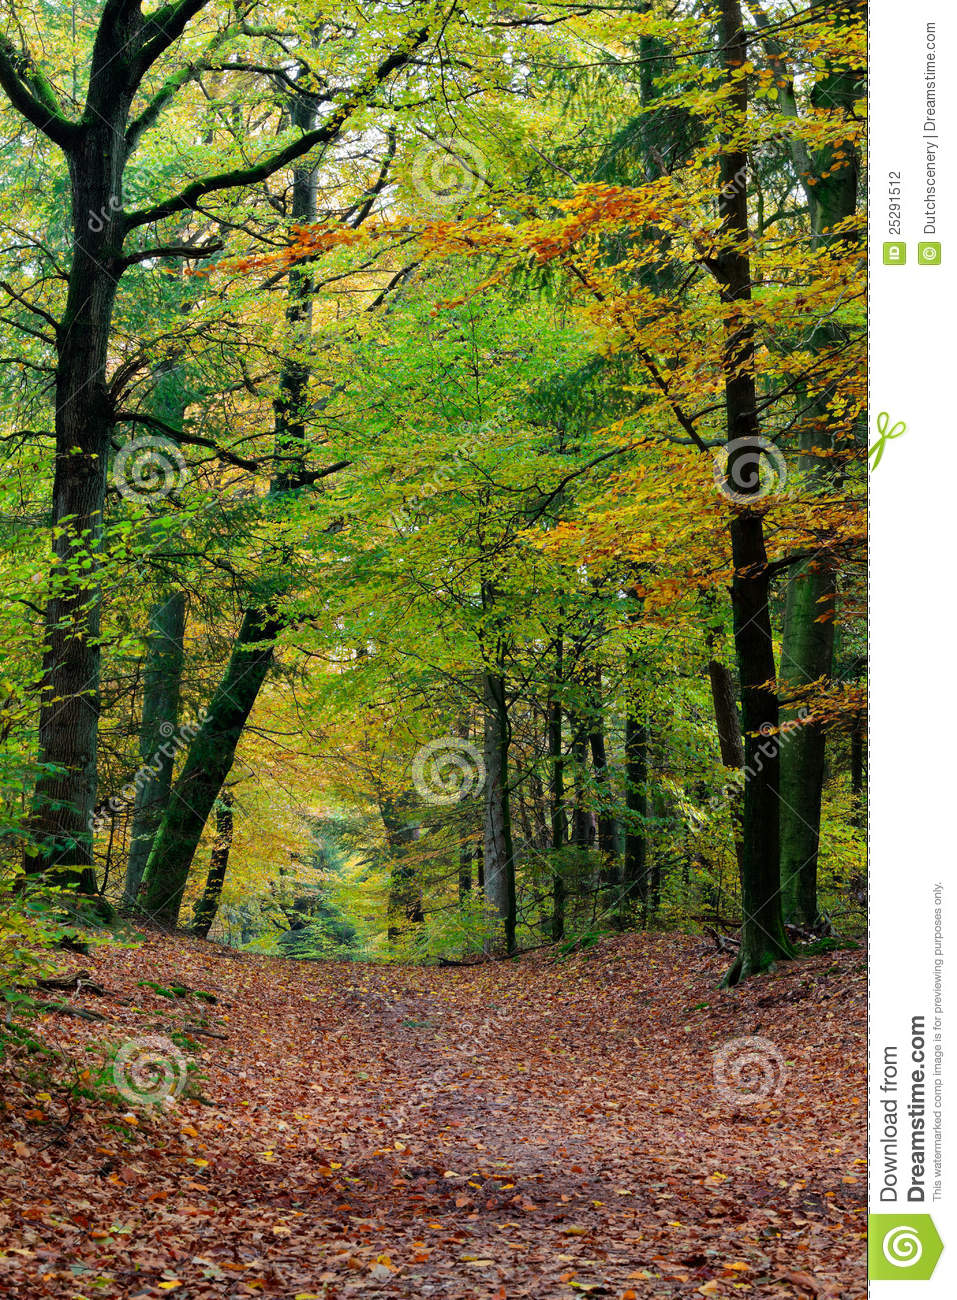 Fall Walk Wallpaper Autumn Fall Forest Scene With Vibrant Colors Stock Photo